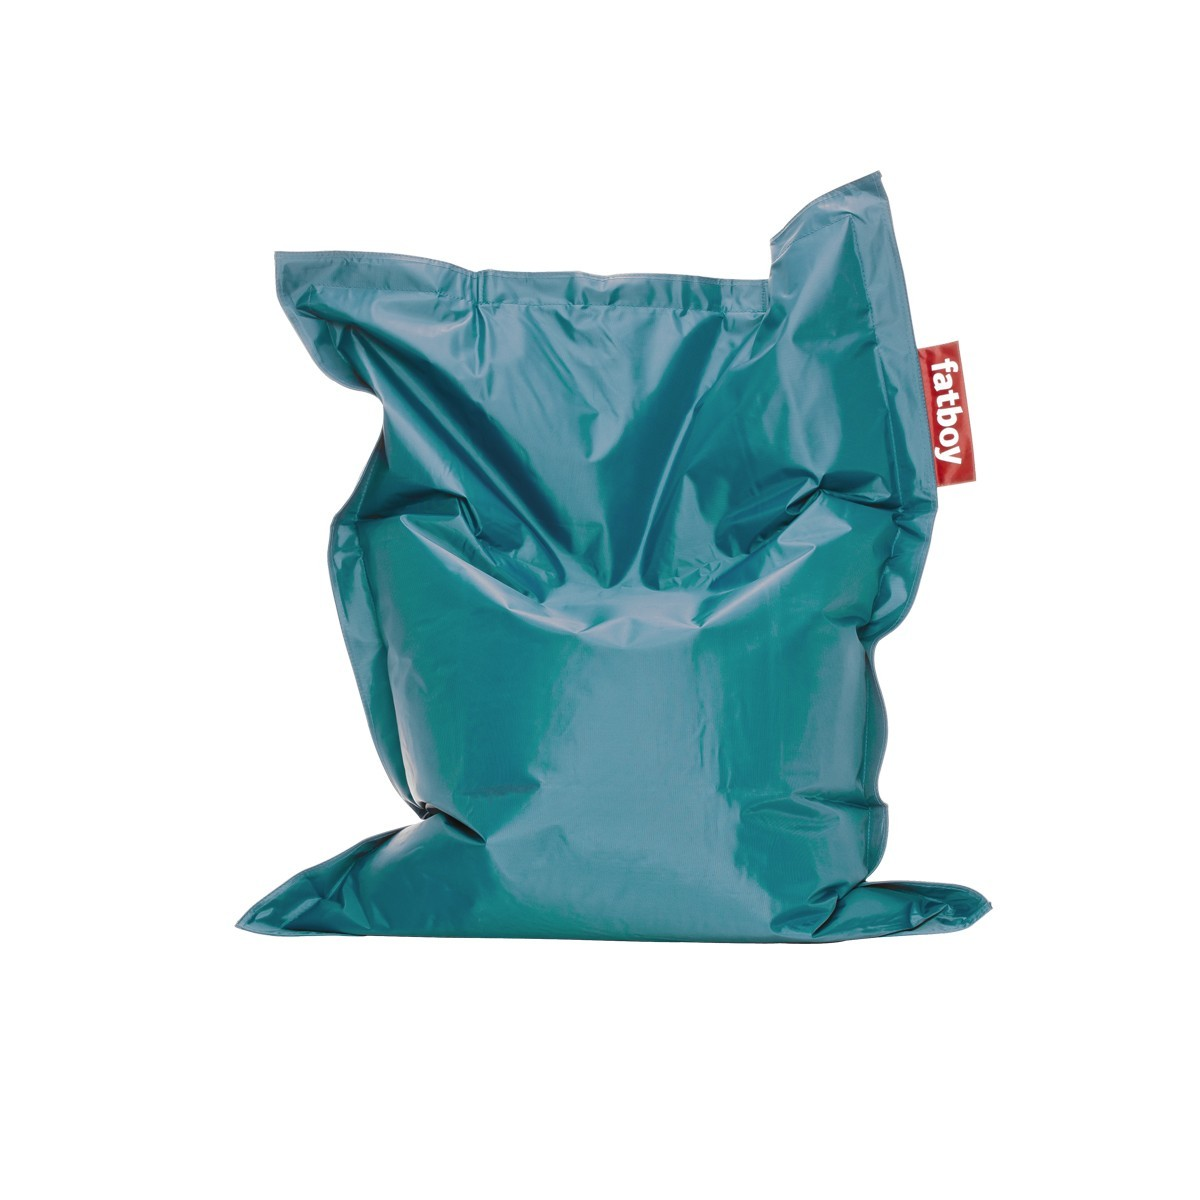 fatboy pouf the junior fatboy turquoise. Black Bedroom Furniture Sets. Home Design Ideas